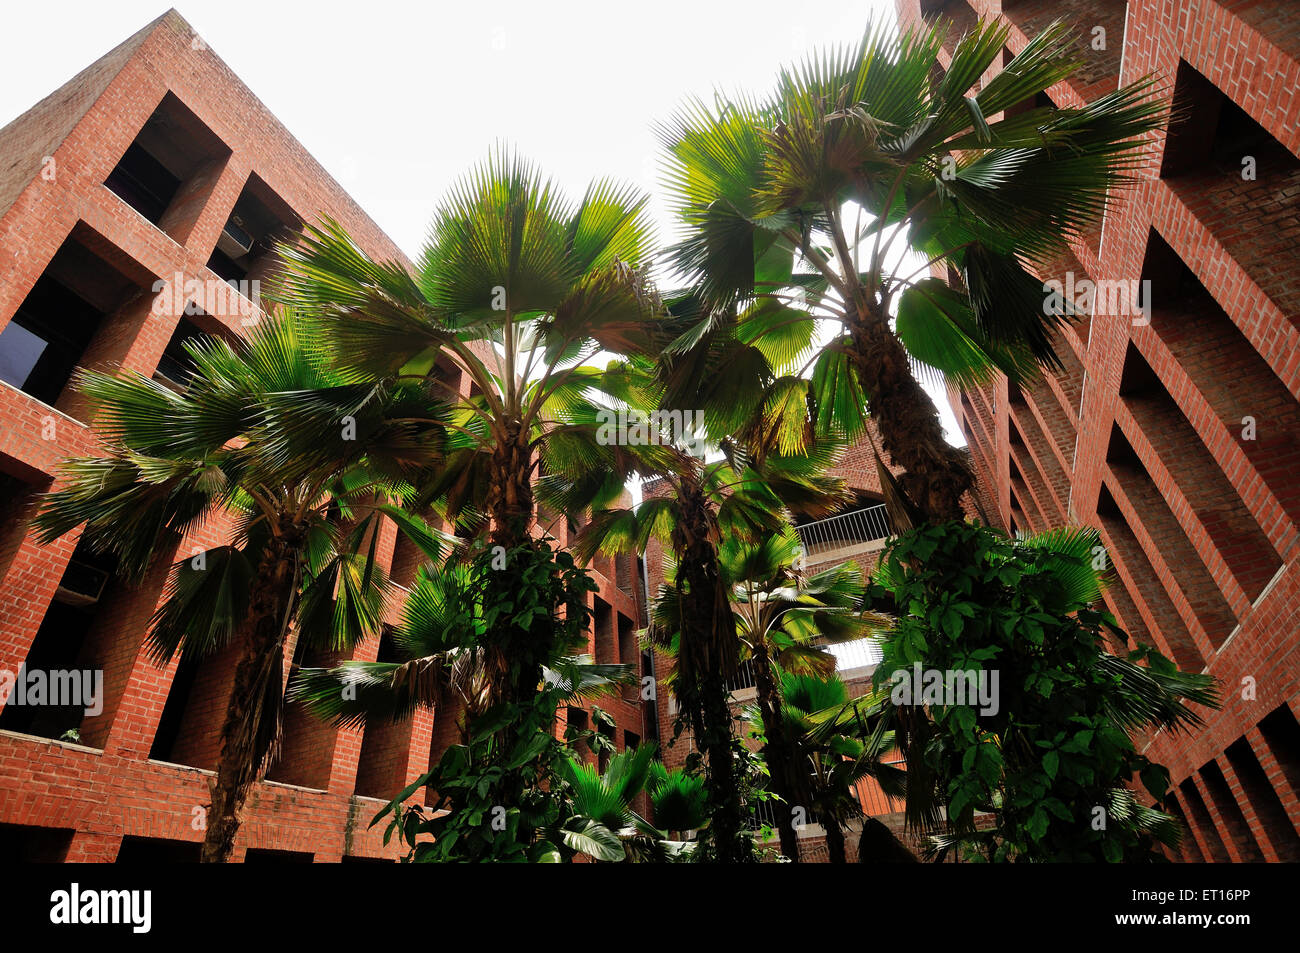 Indian Institute of Management Ahmedabad Gujarat India Asia - Stock Image